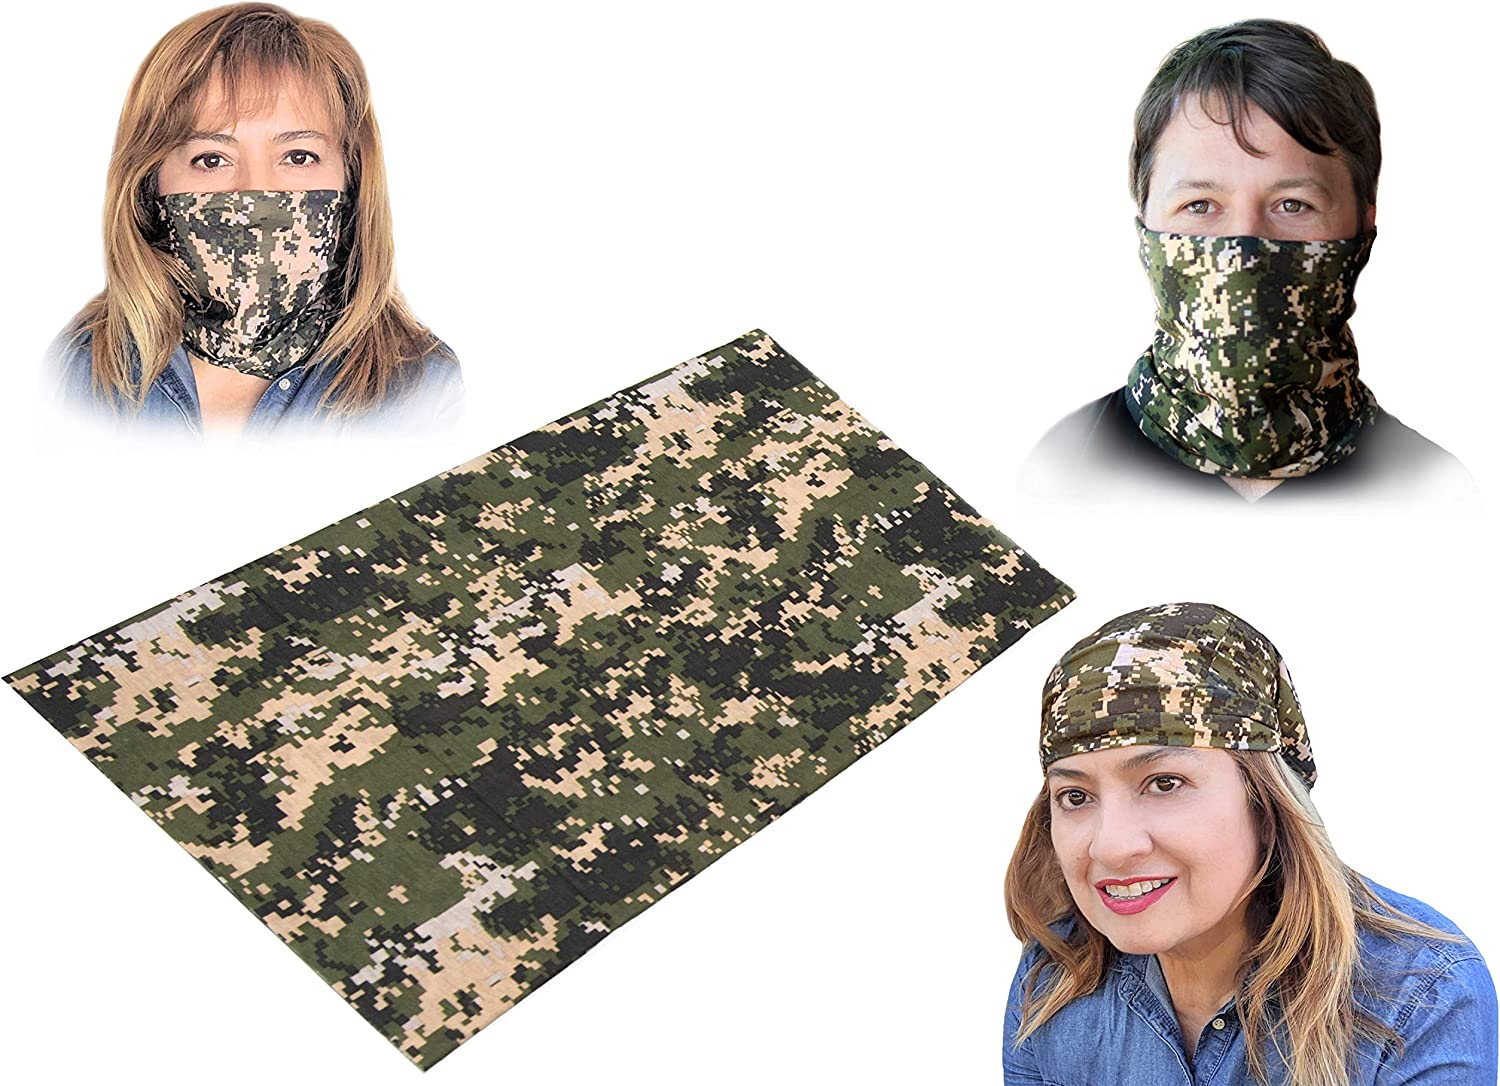 Green Camo Reusable Bandana Face Mask, Washable Neck Gaiter Breathable Face Cover, Ideal For Women & Men For Running, Cycling, Snowboarding, Sun And Dust Protection